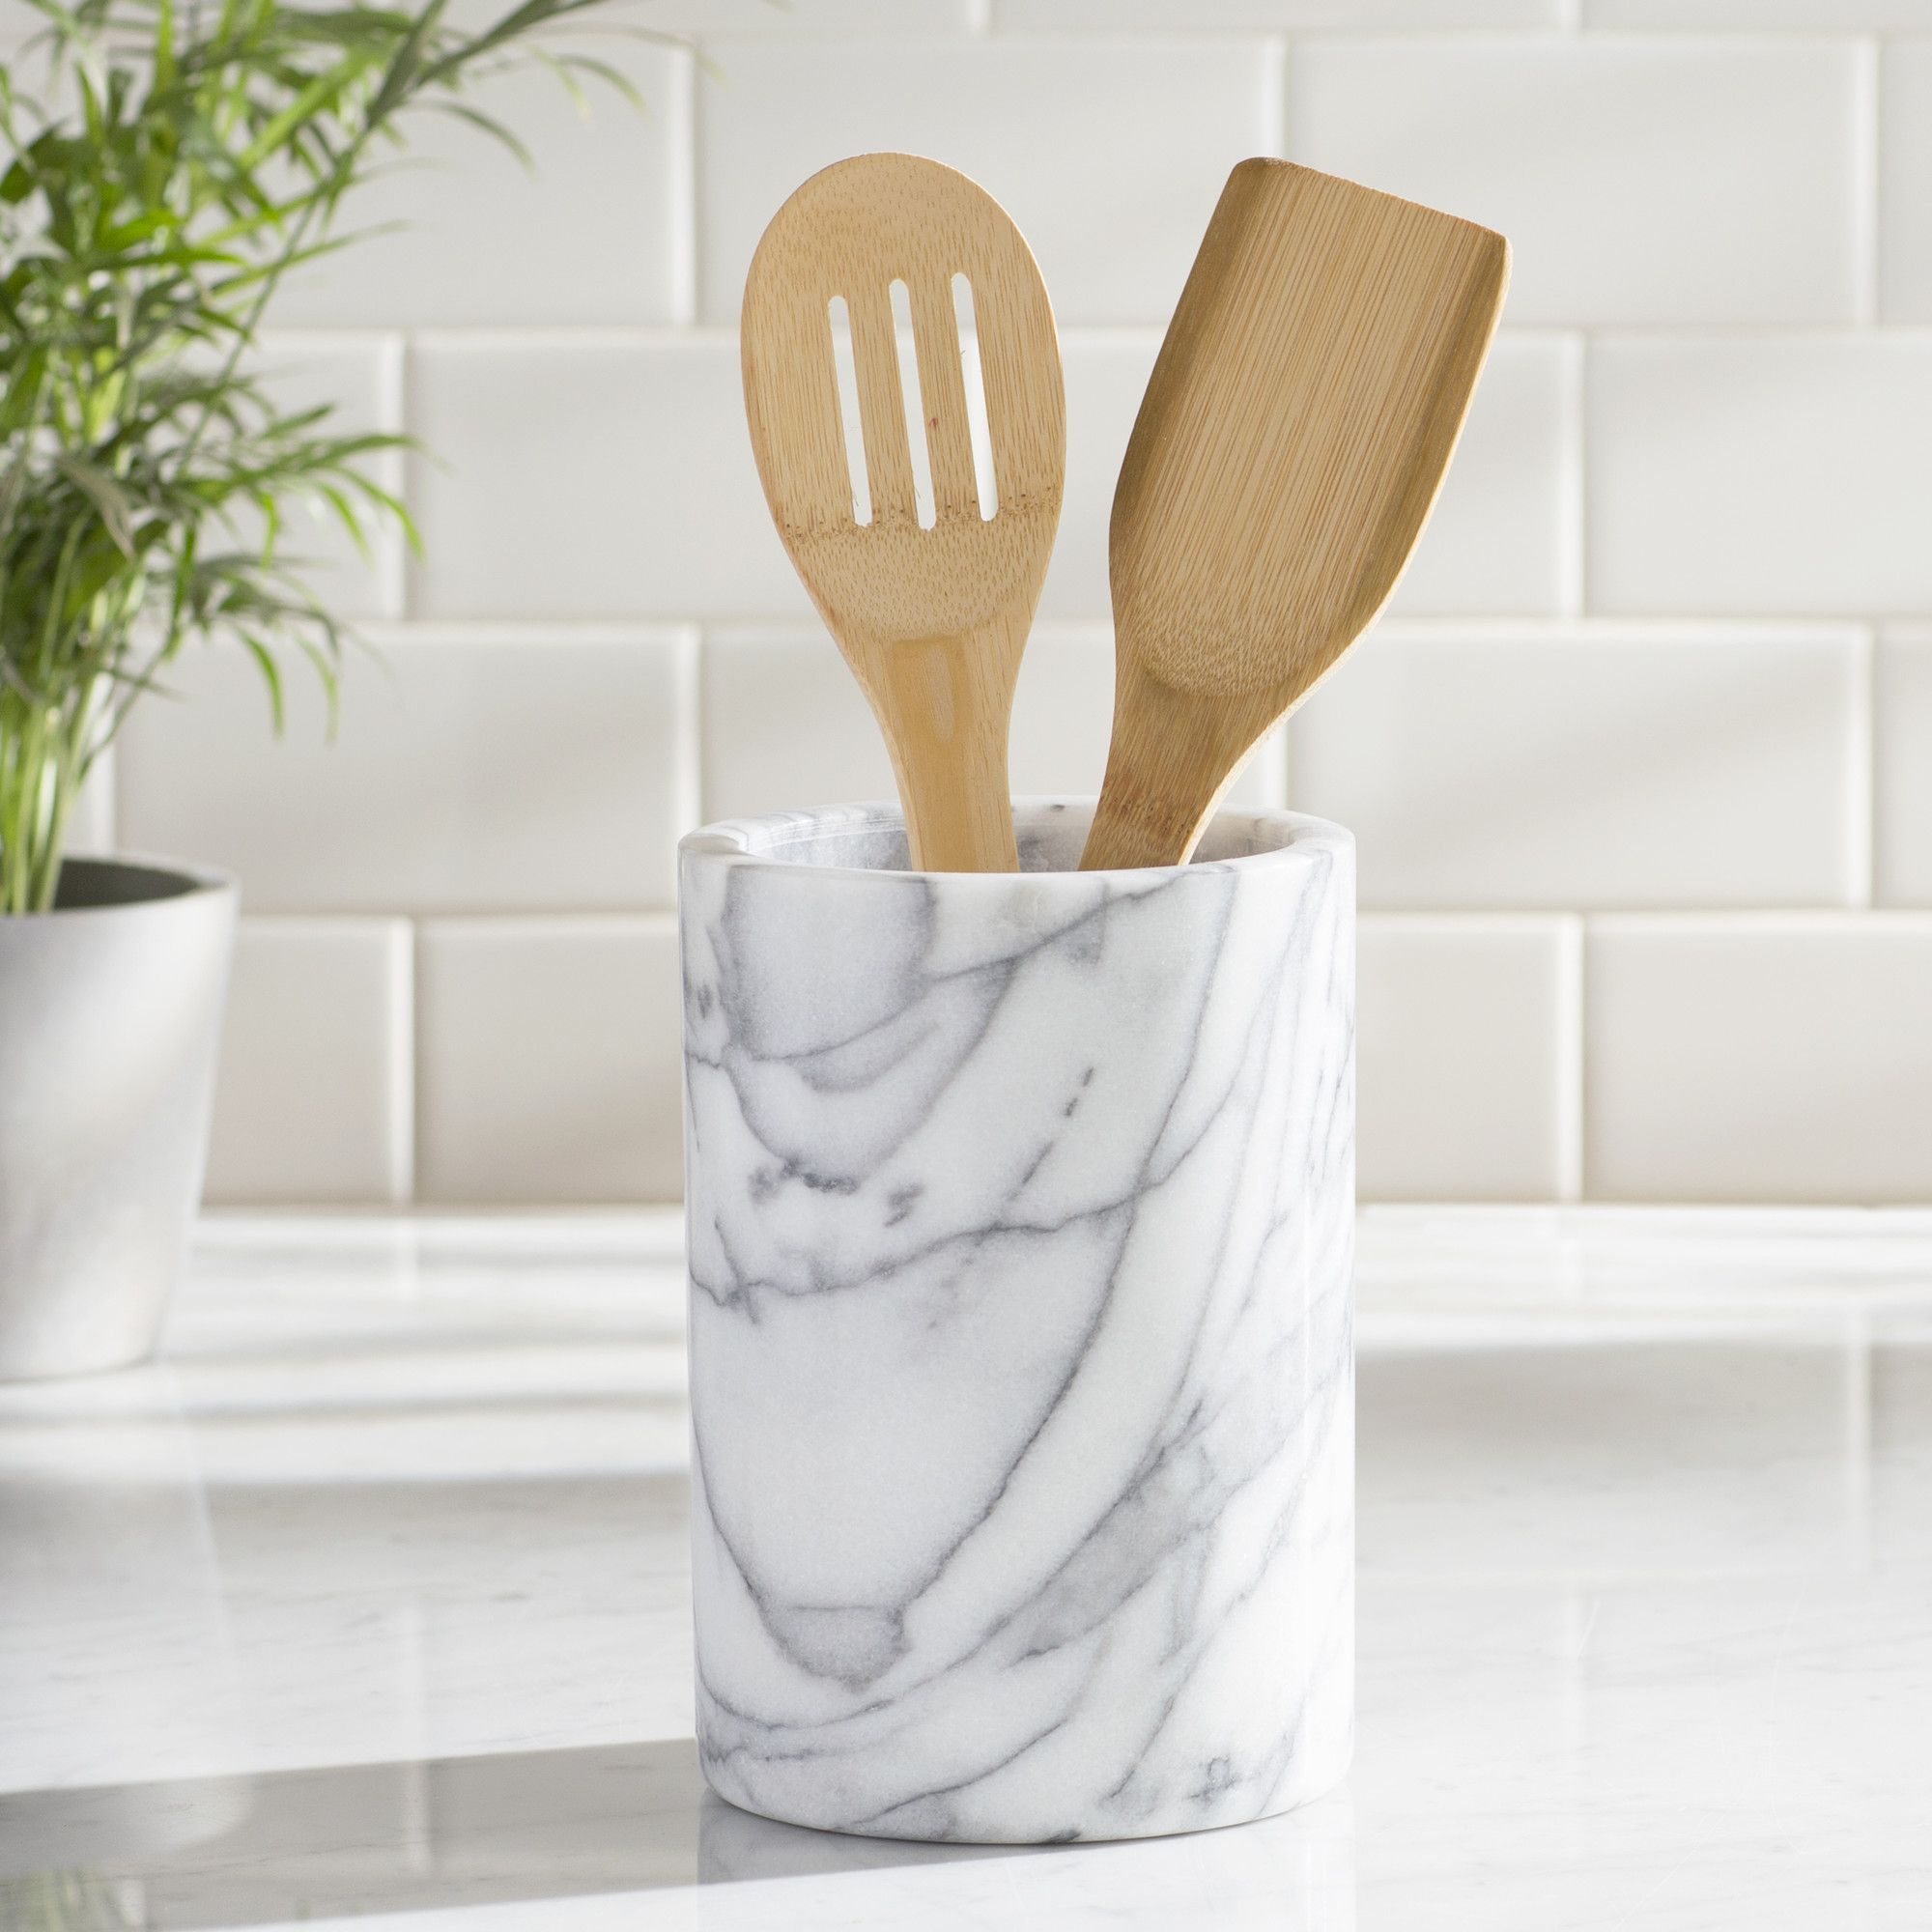 Belani Marble Utensil Holder | Utensils and Products